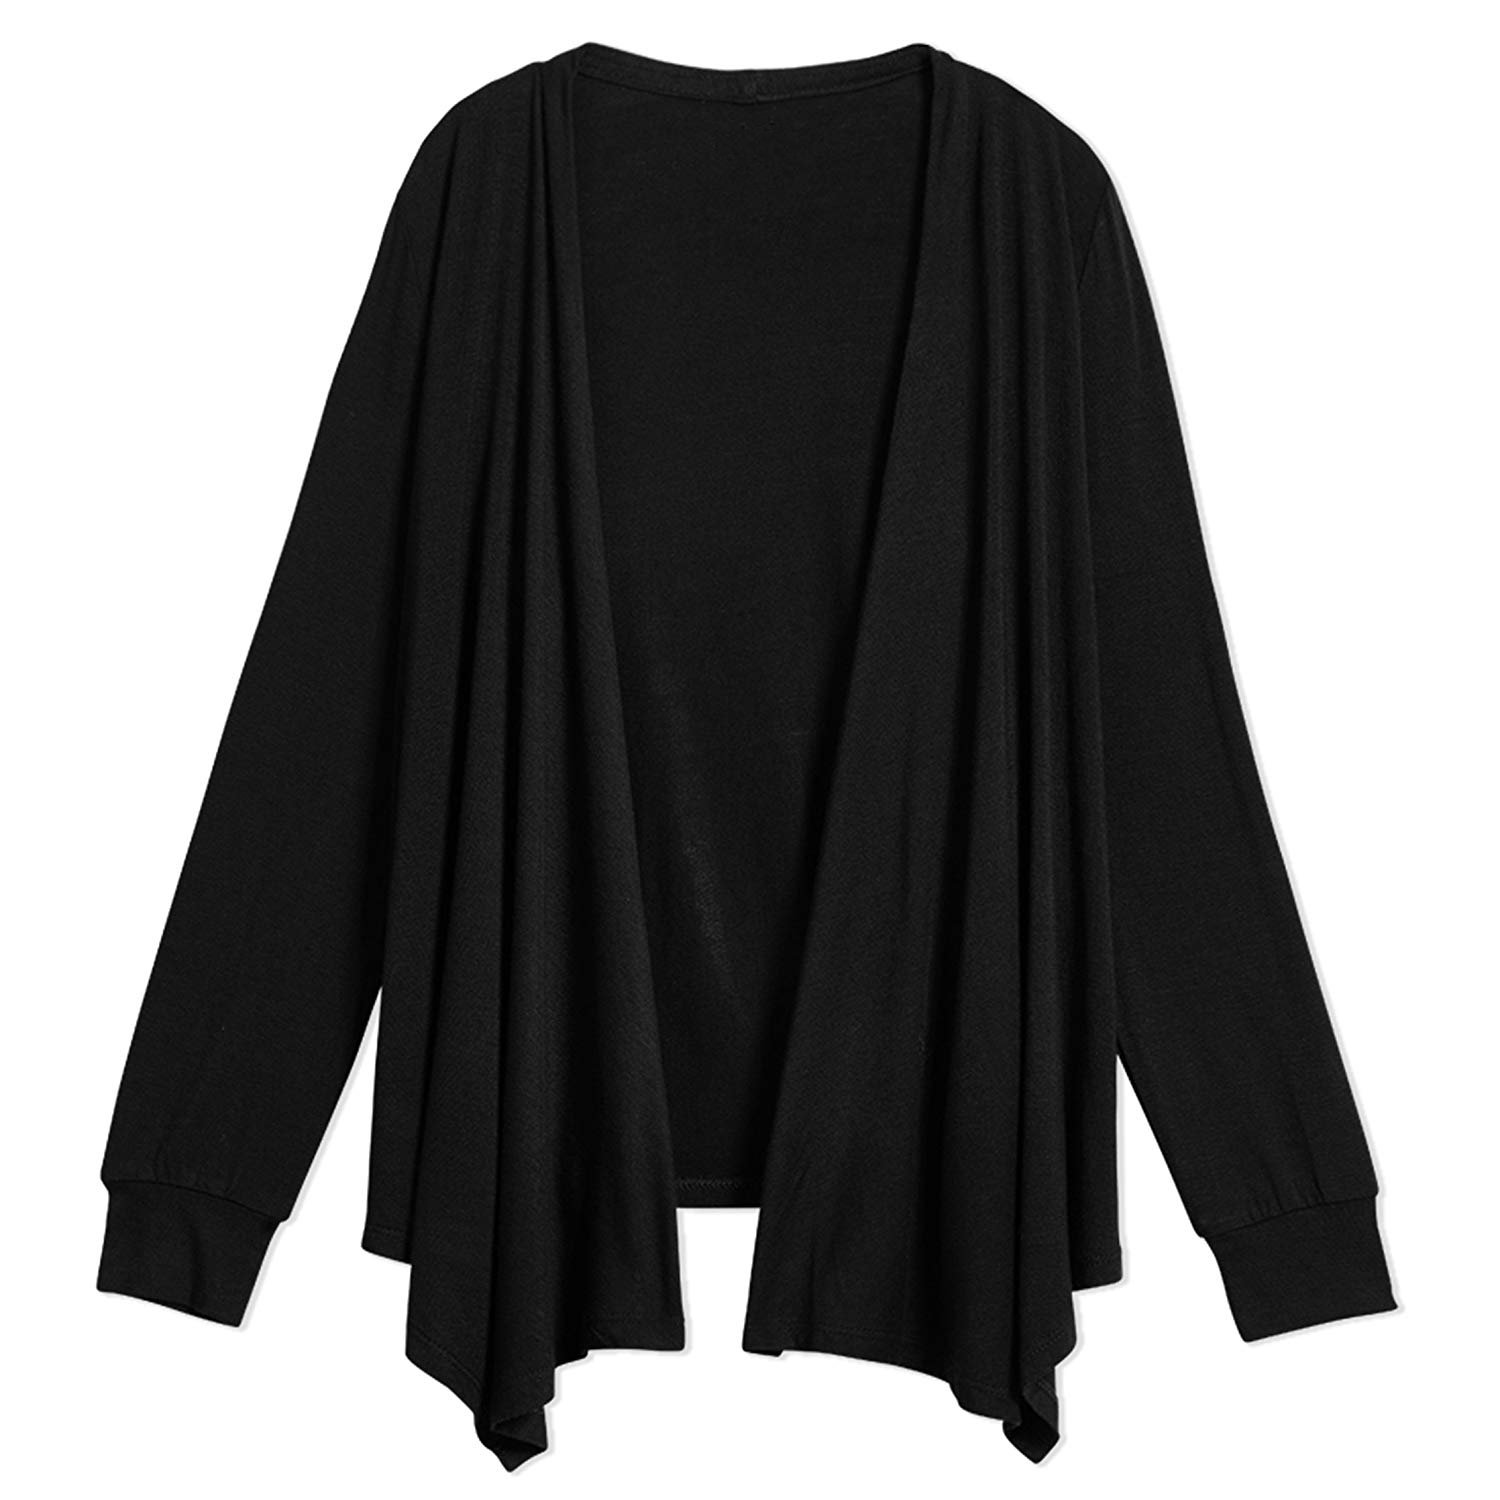 Cymbopogon Girls Long Sleeve Cardigan Open Front Solid Light Weight Loose Sweater Tops with Pockets